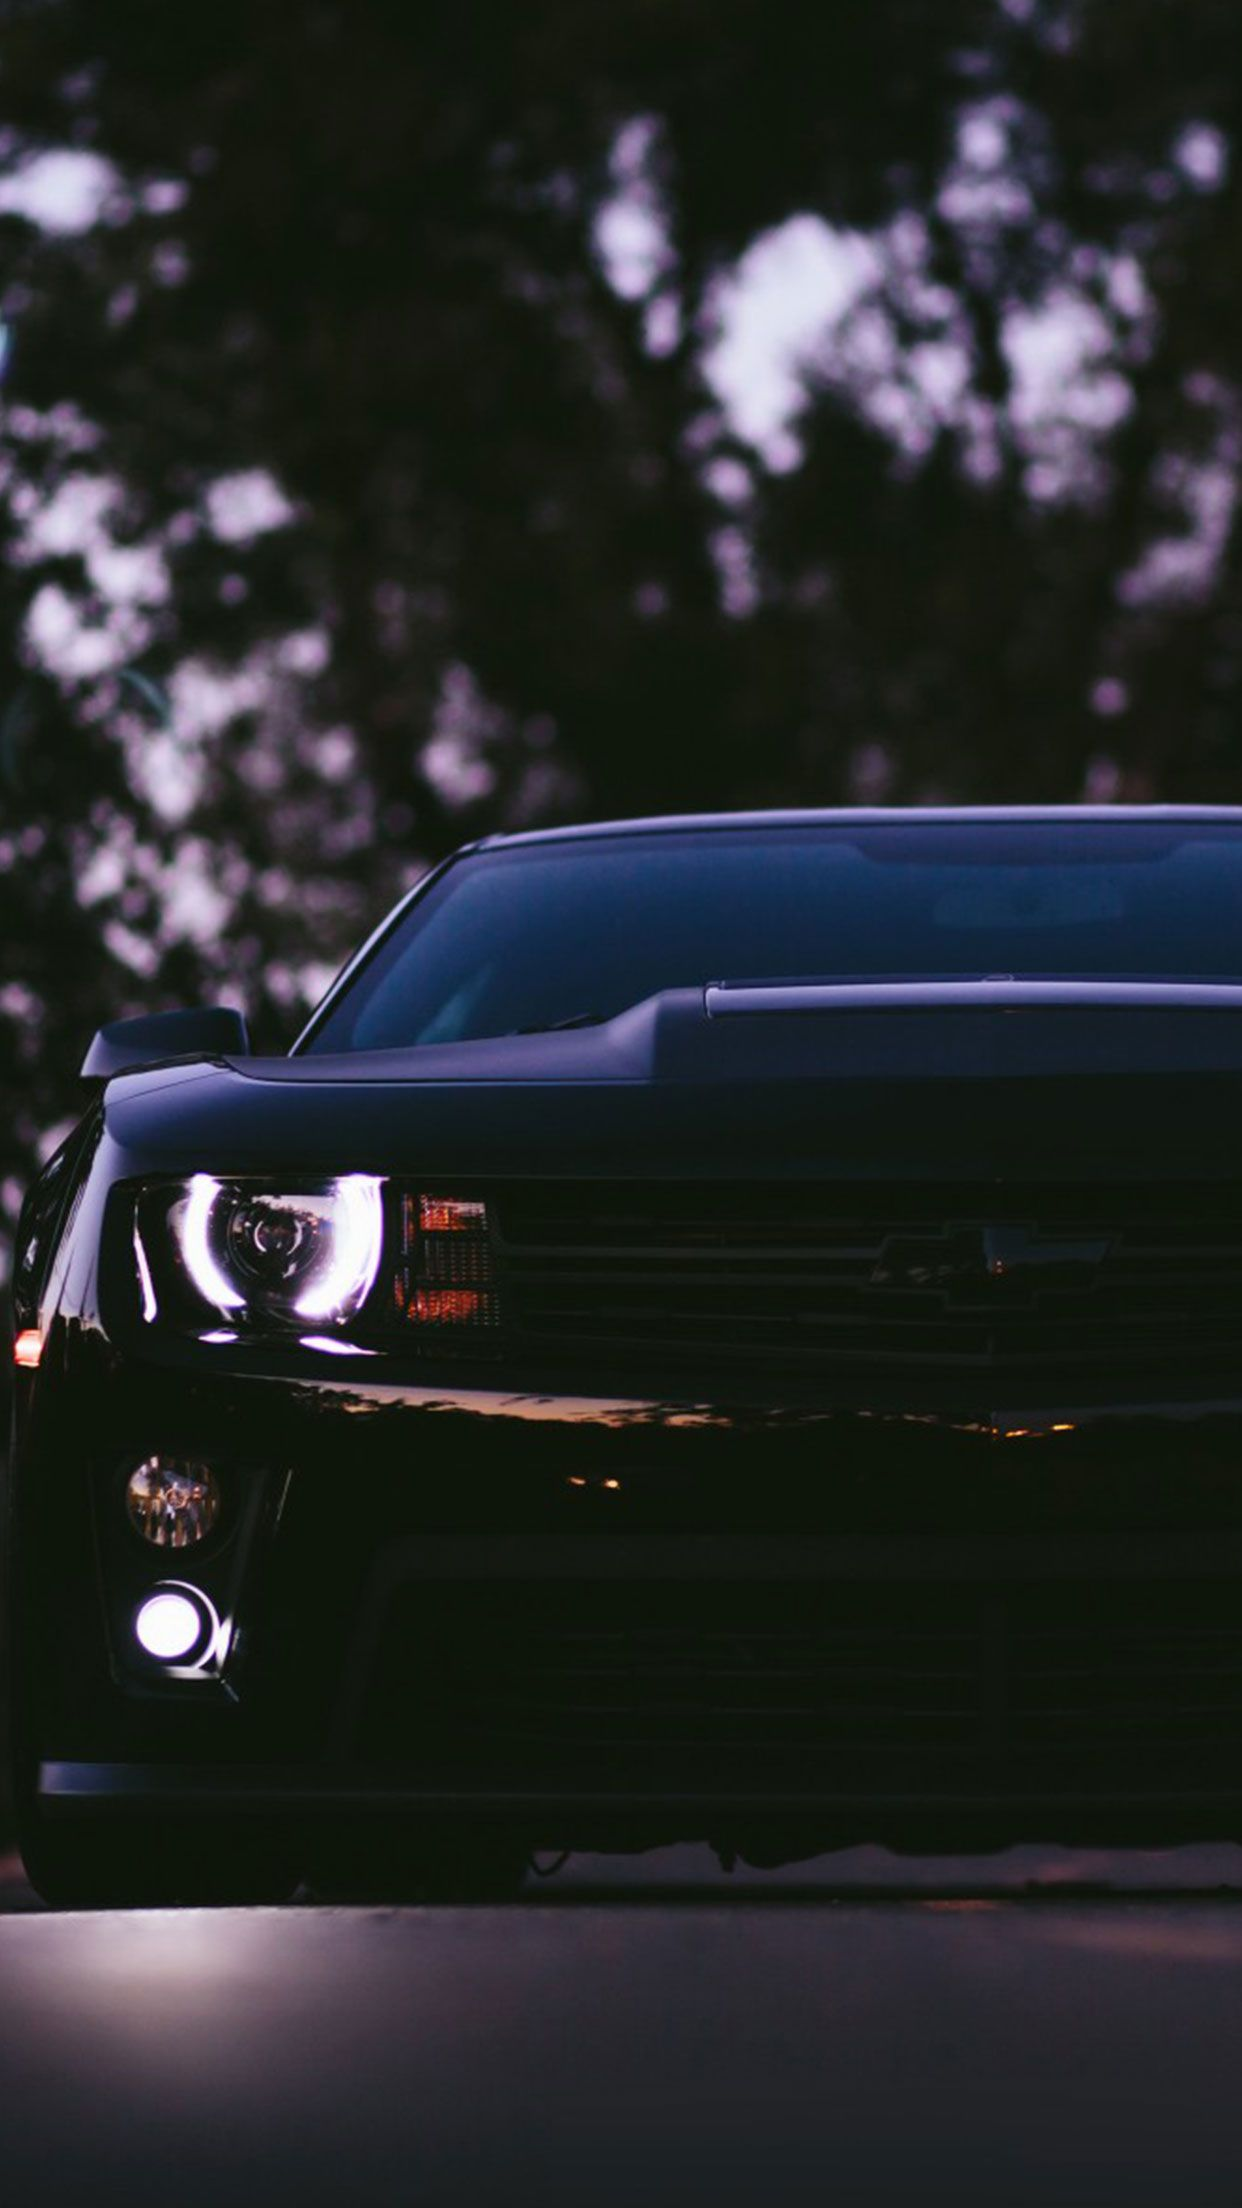 black camaro ss car wallpaper for iphone and android at wallzapp com